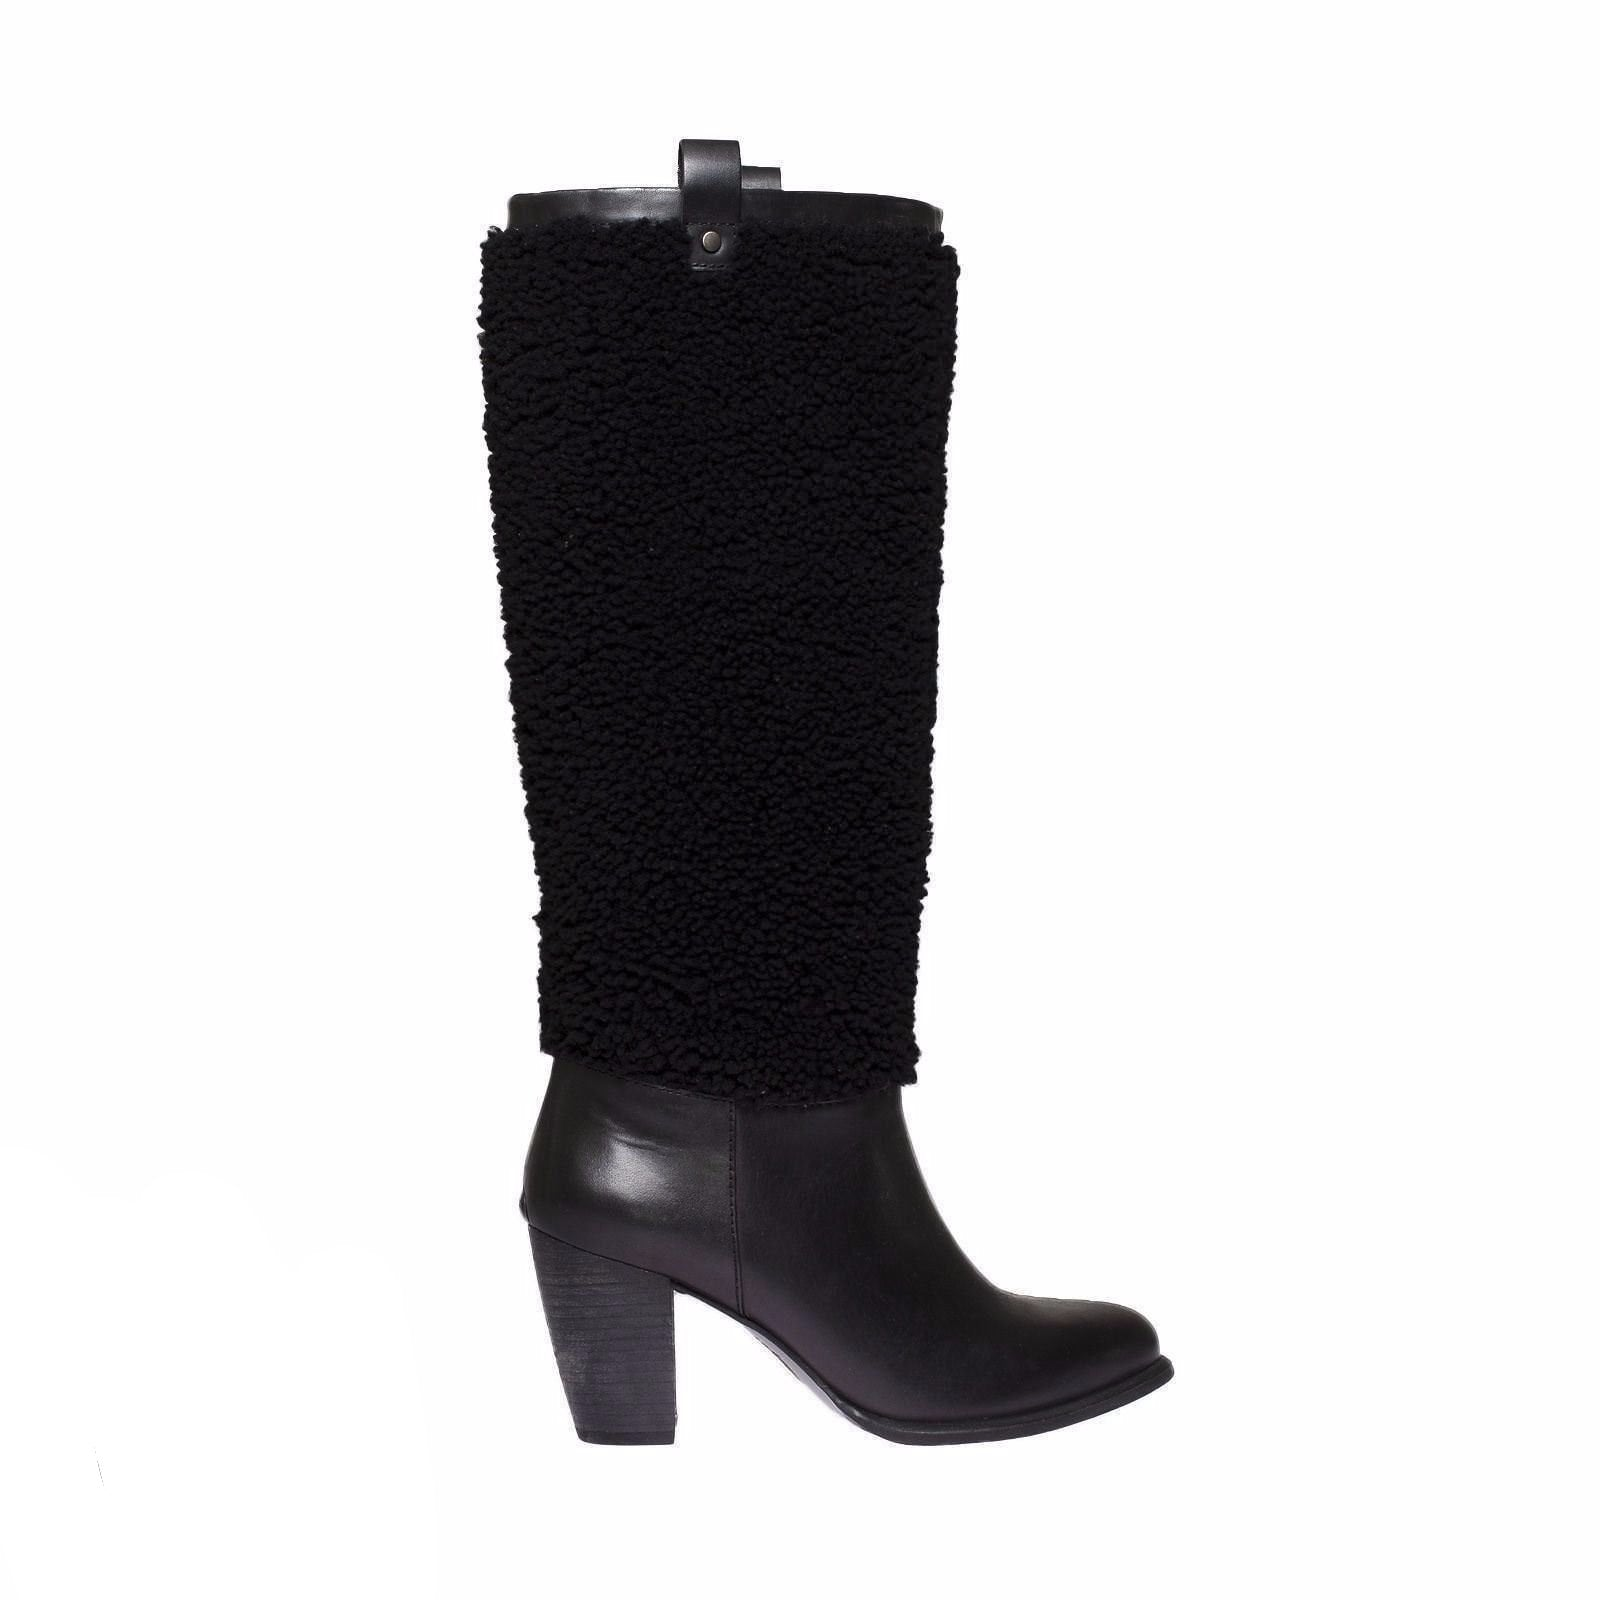 039857eb260 Women's Boots Tagged